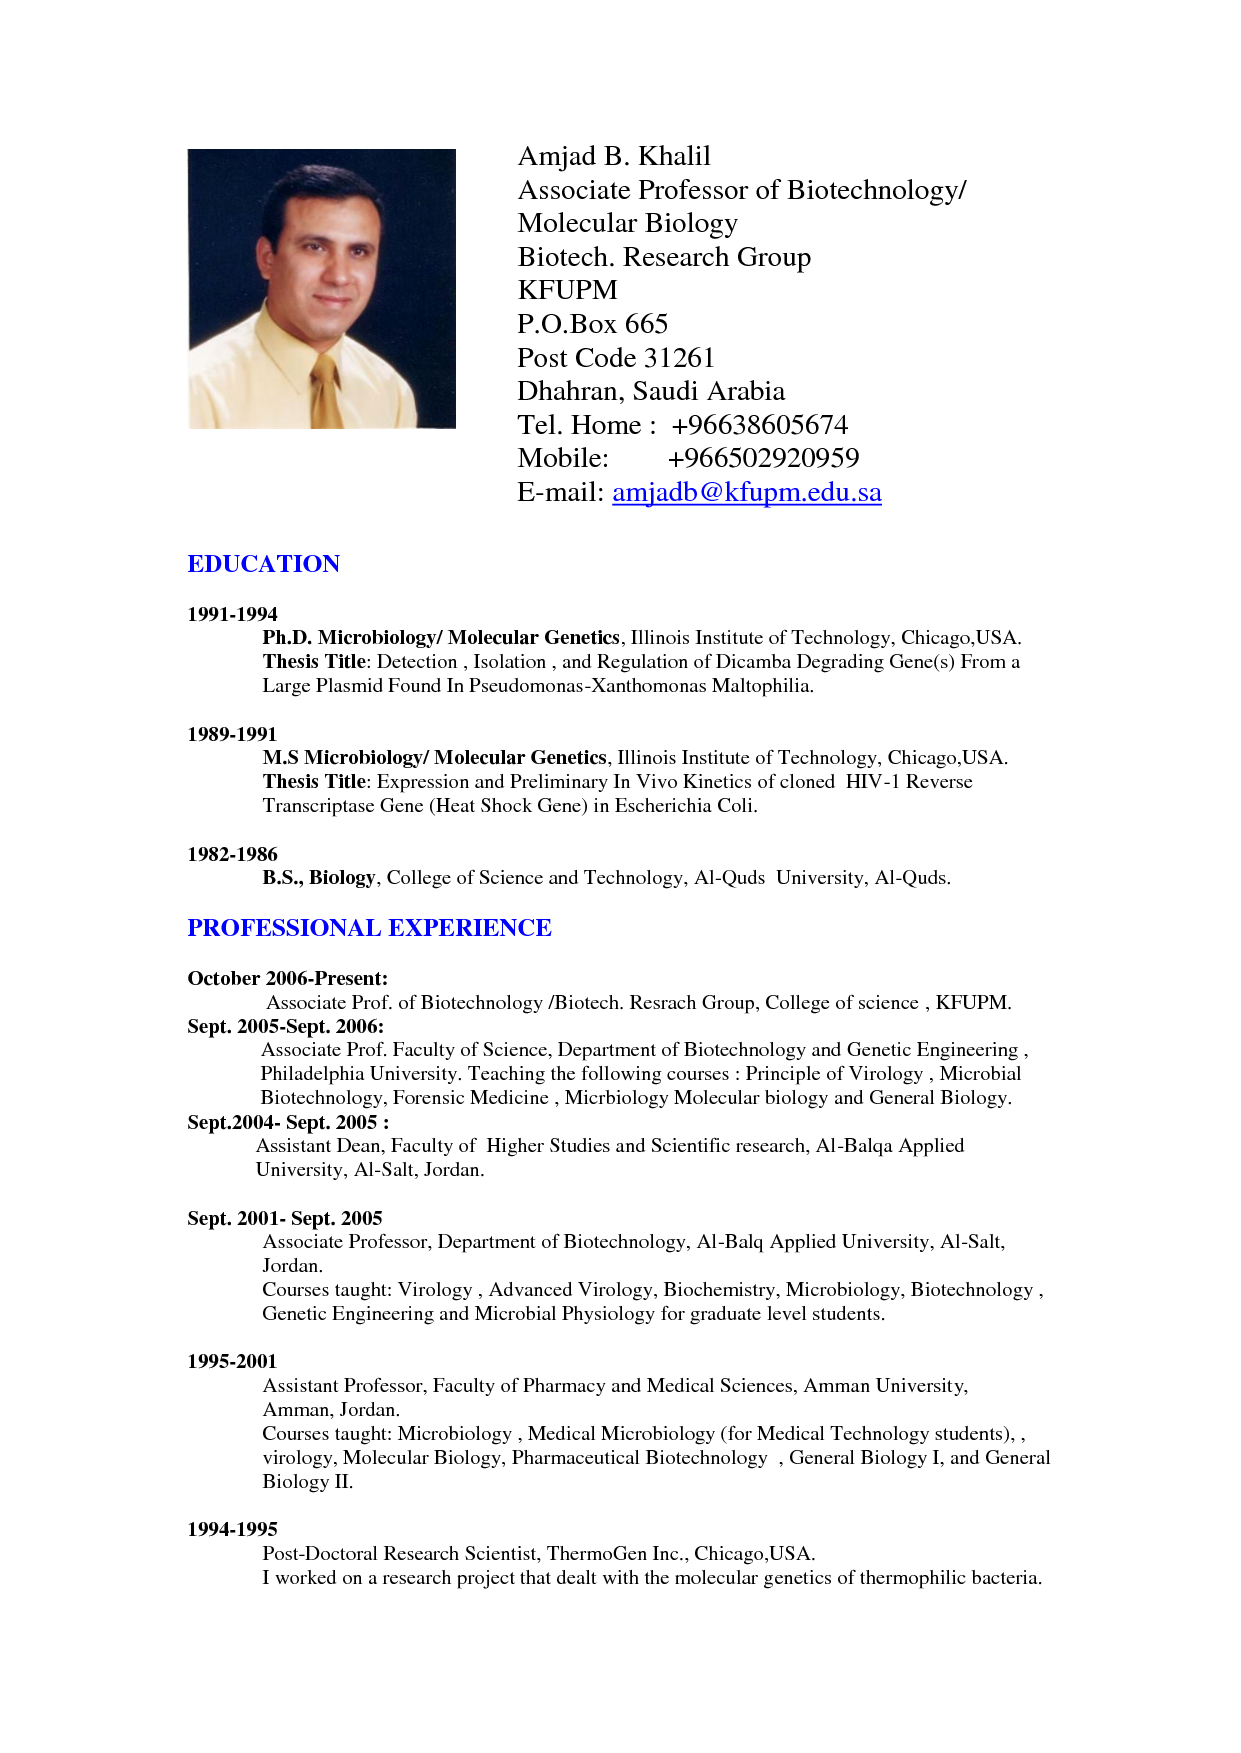 Resume Format Usa Professional Cv Template Download Ndw06Cpn  Chamara  Pinterest